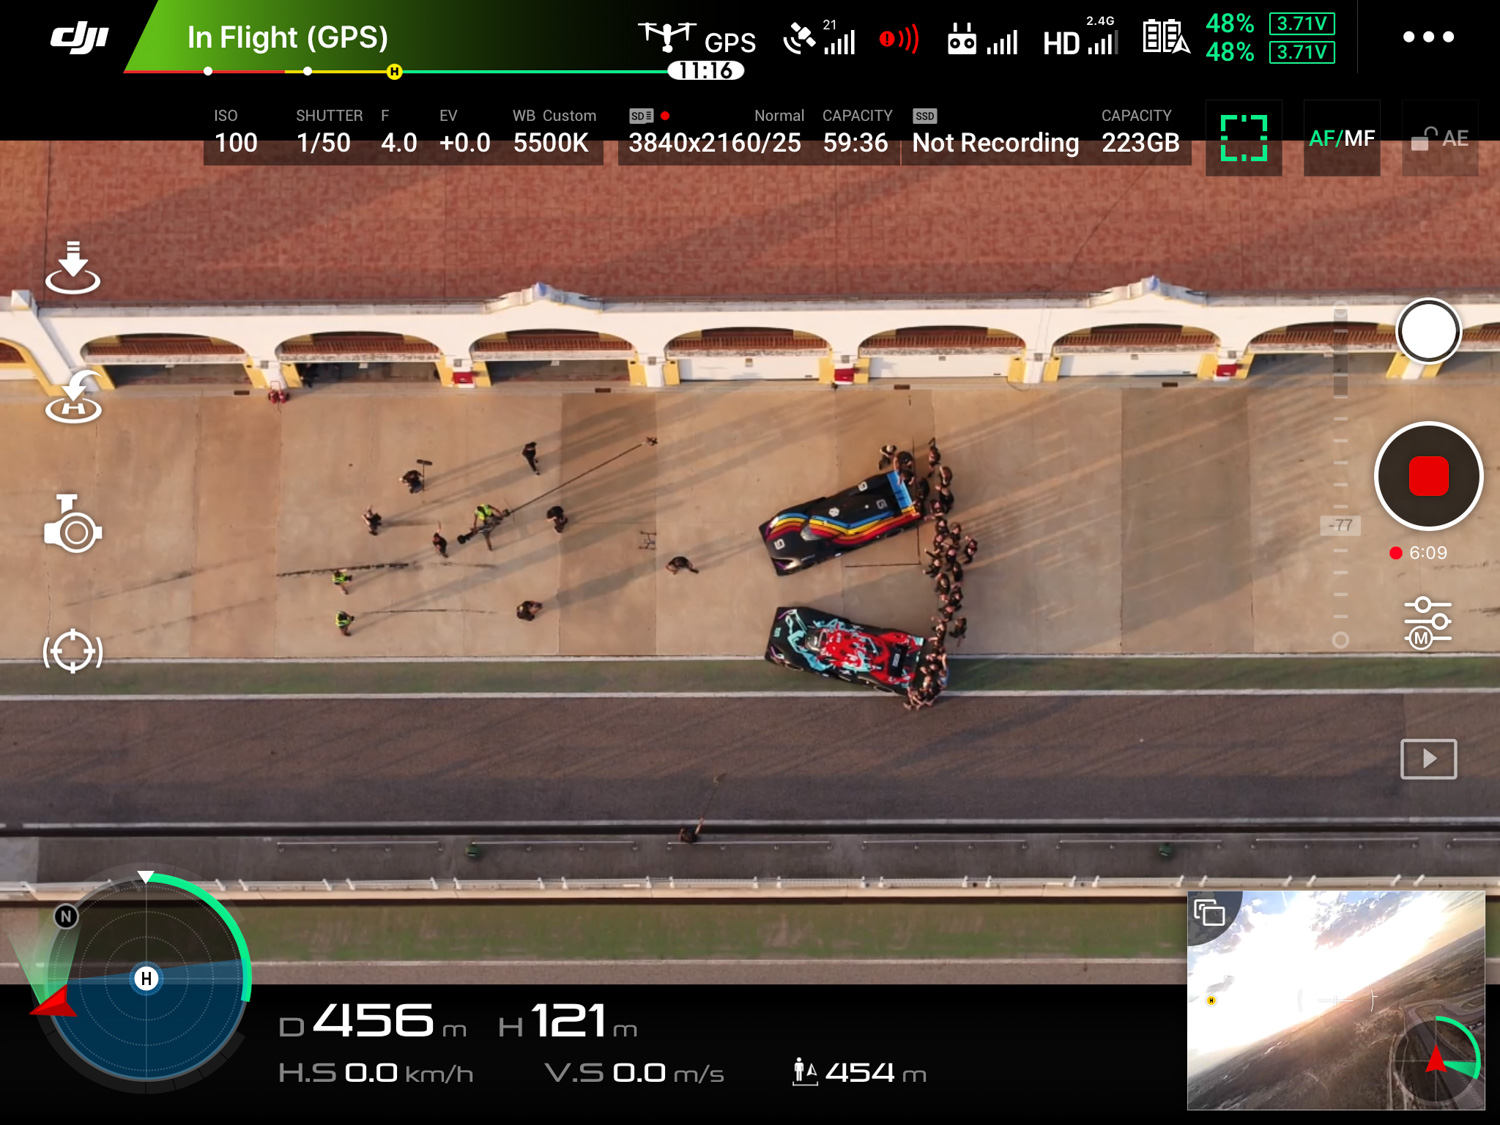 drone_filming_aerial_imagery_north_wales_roborace-3.jpg